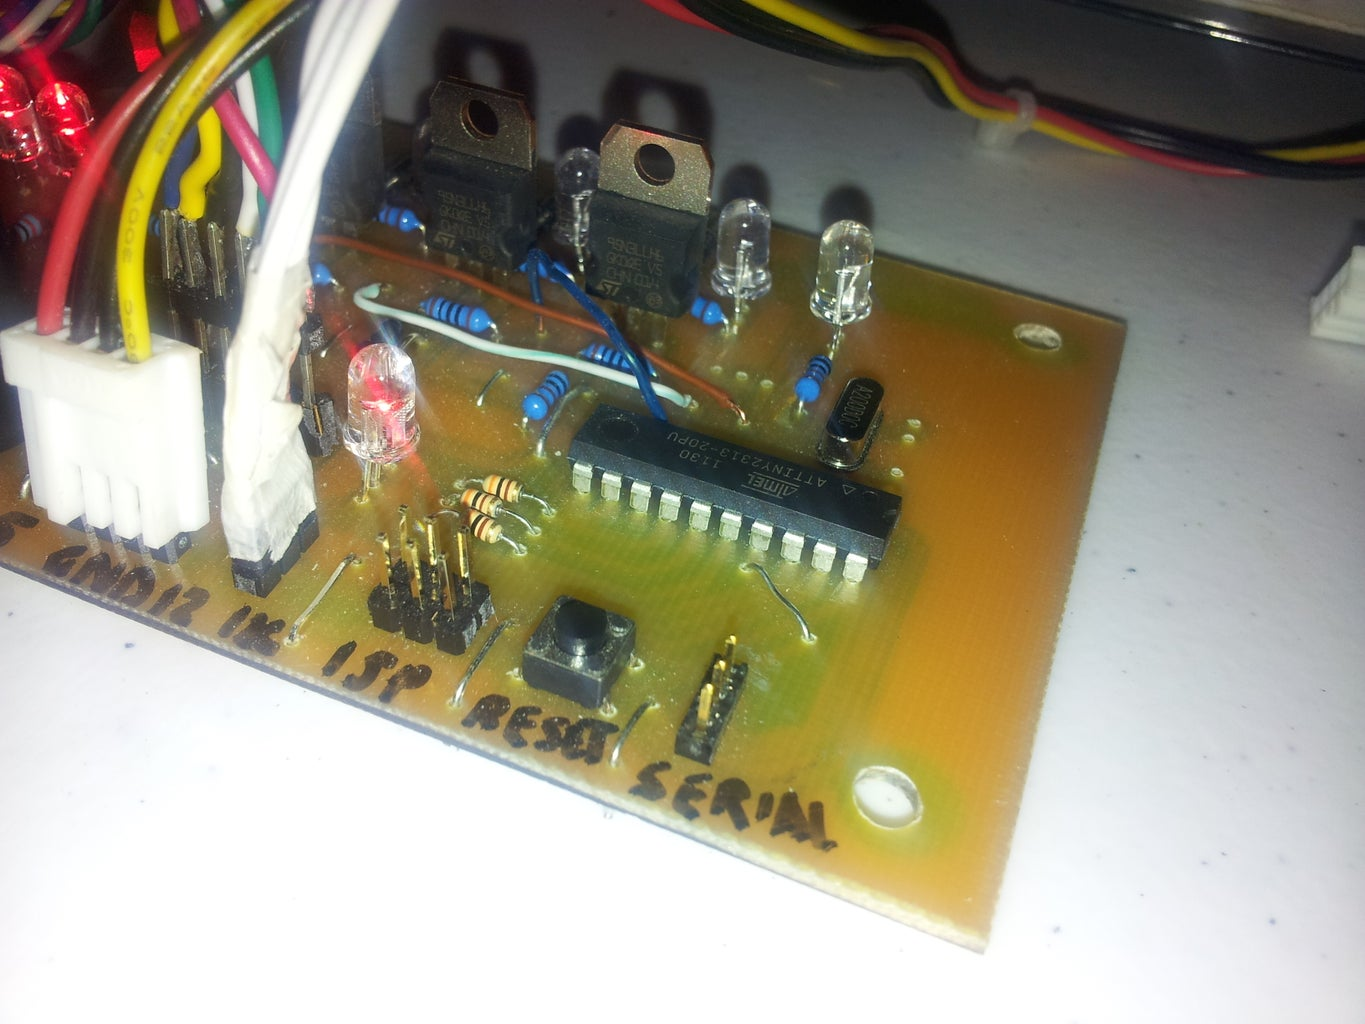 ATTiny USI I2C Introduction - a Powerful, Fast, and Convenient Communication Interface for Your ATTiny Projects!